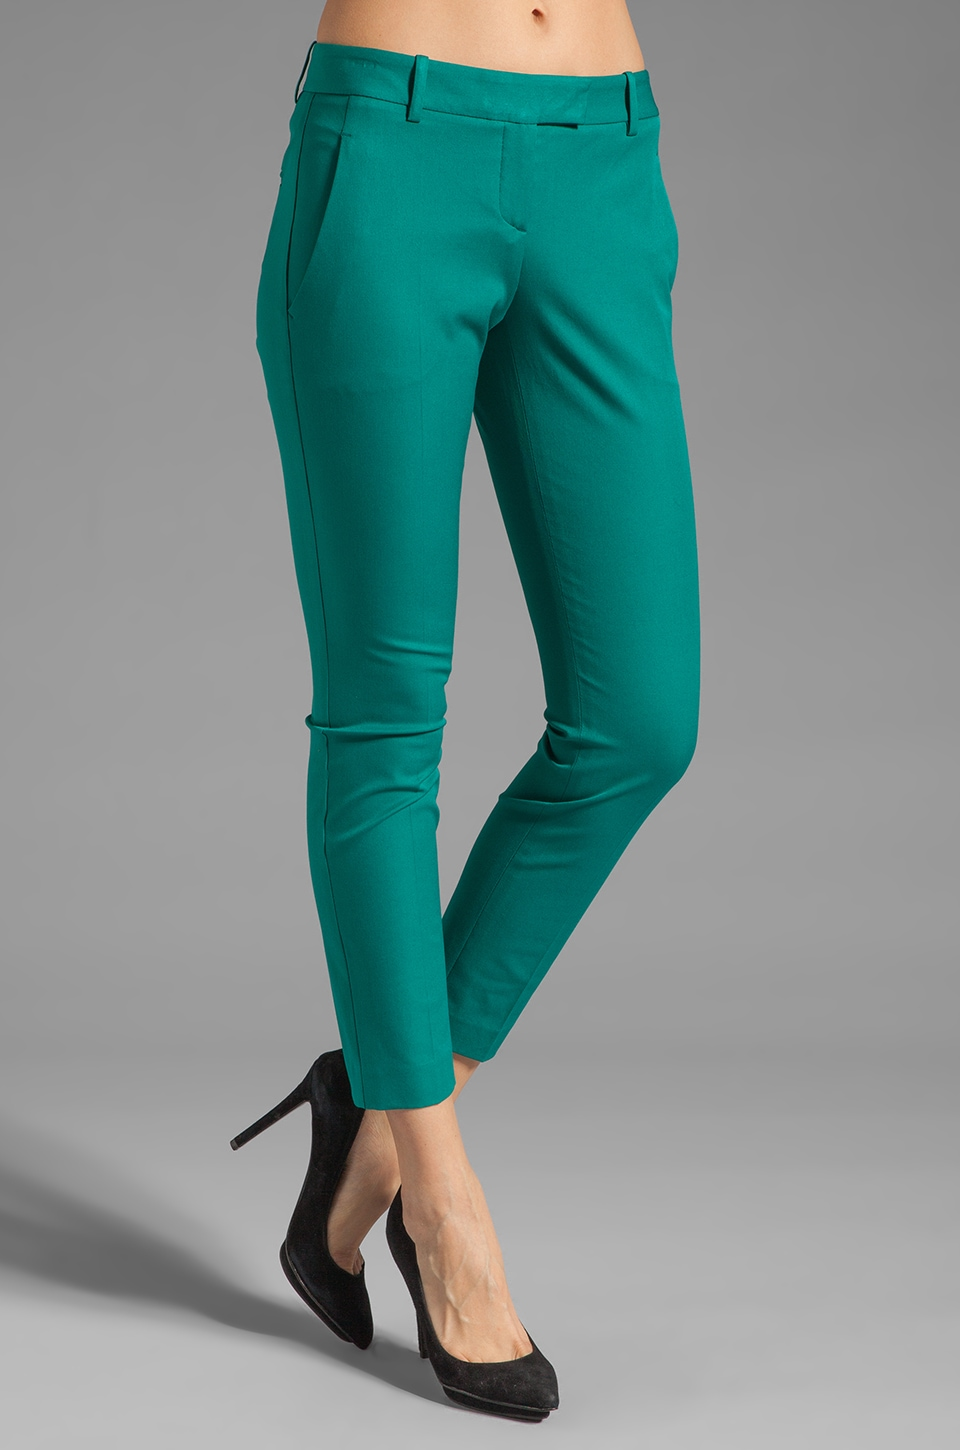 Theory Sienna Bistretch Pant in Teal